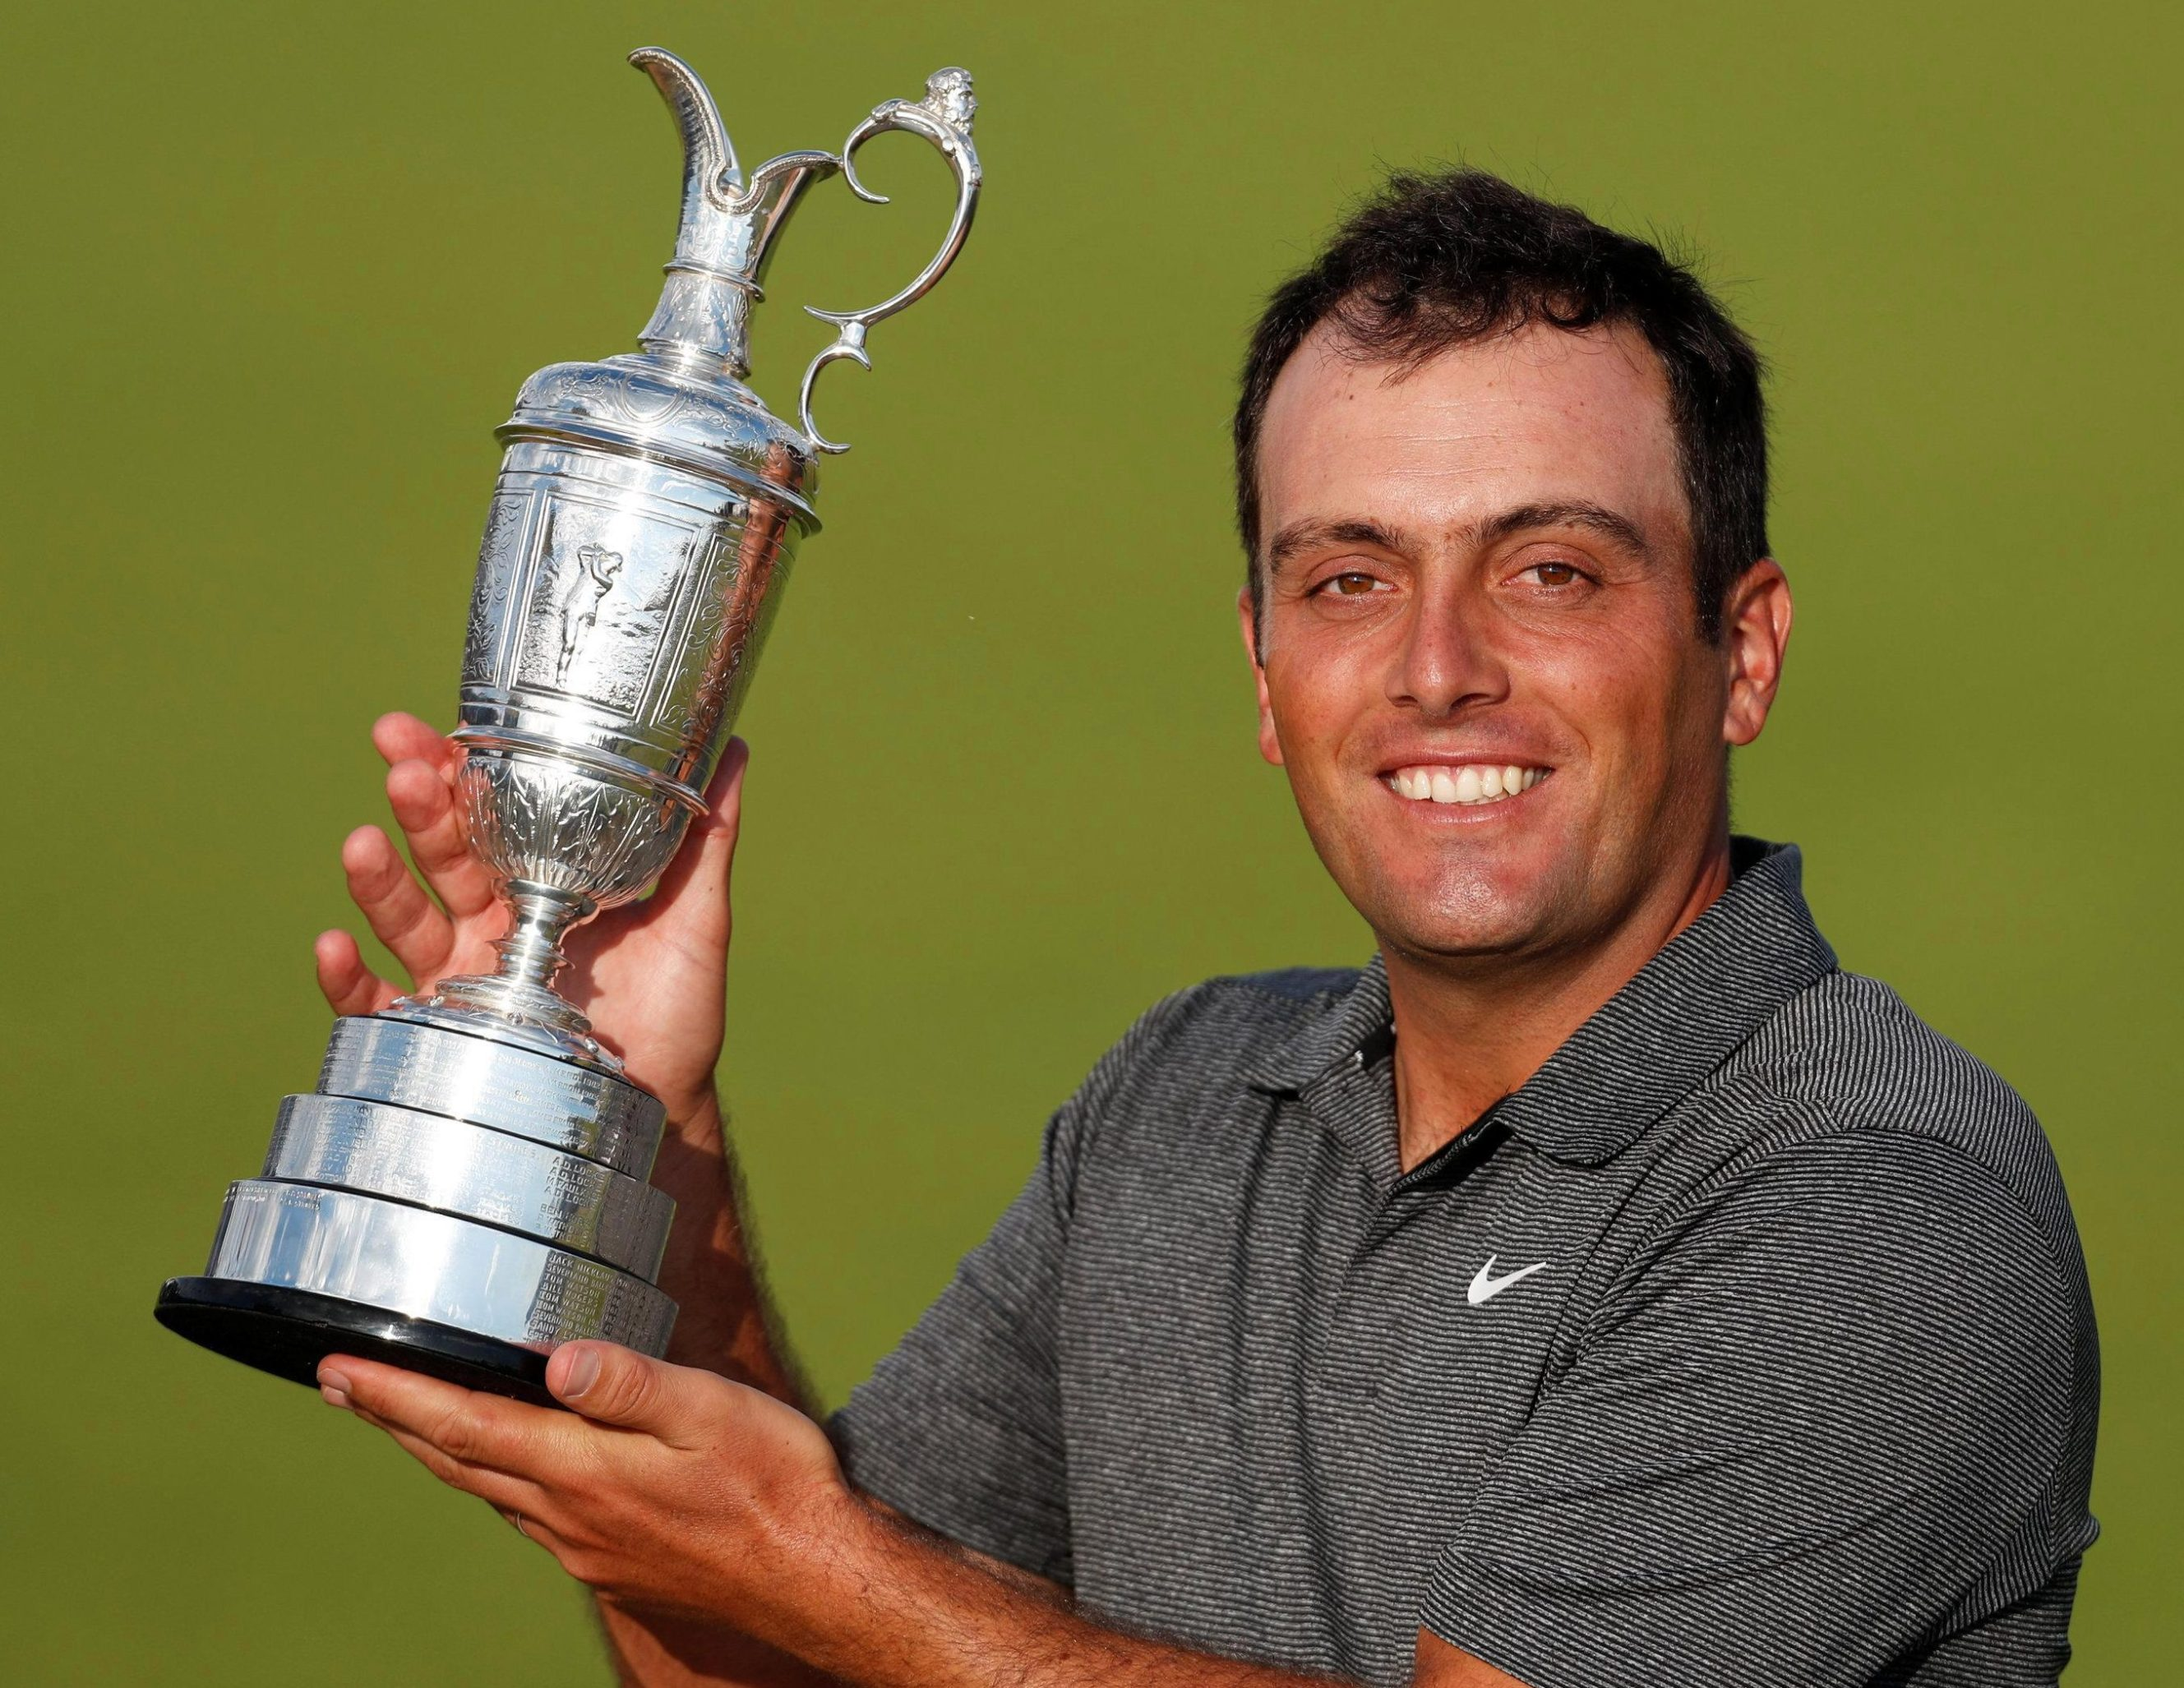 Francesco Molinari was supposed to dash to the airport afterwards but admitted a victory that surprised even himself put his plans in doubt